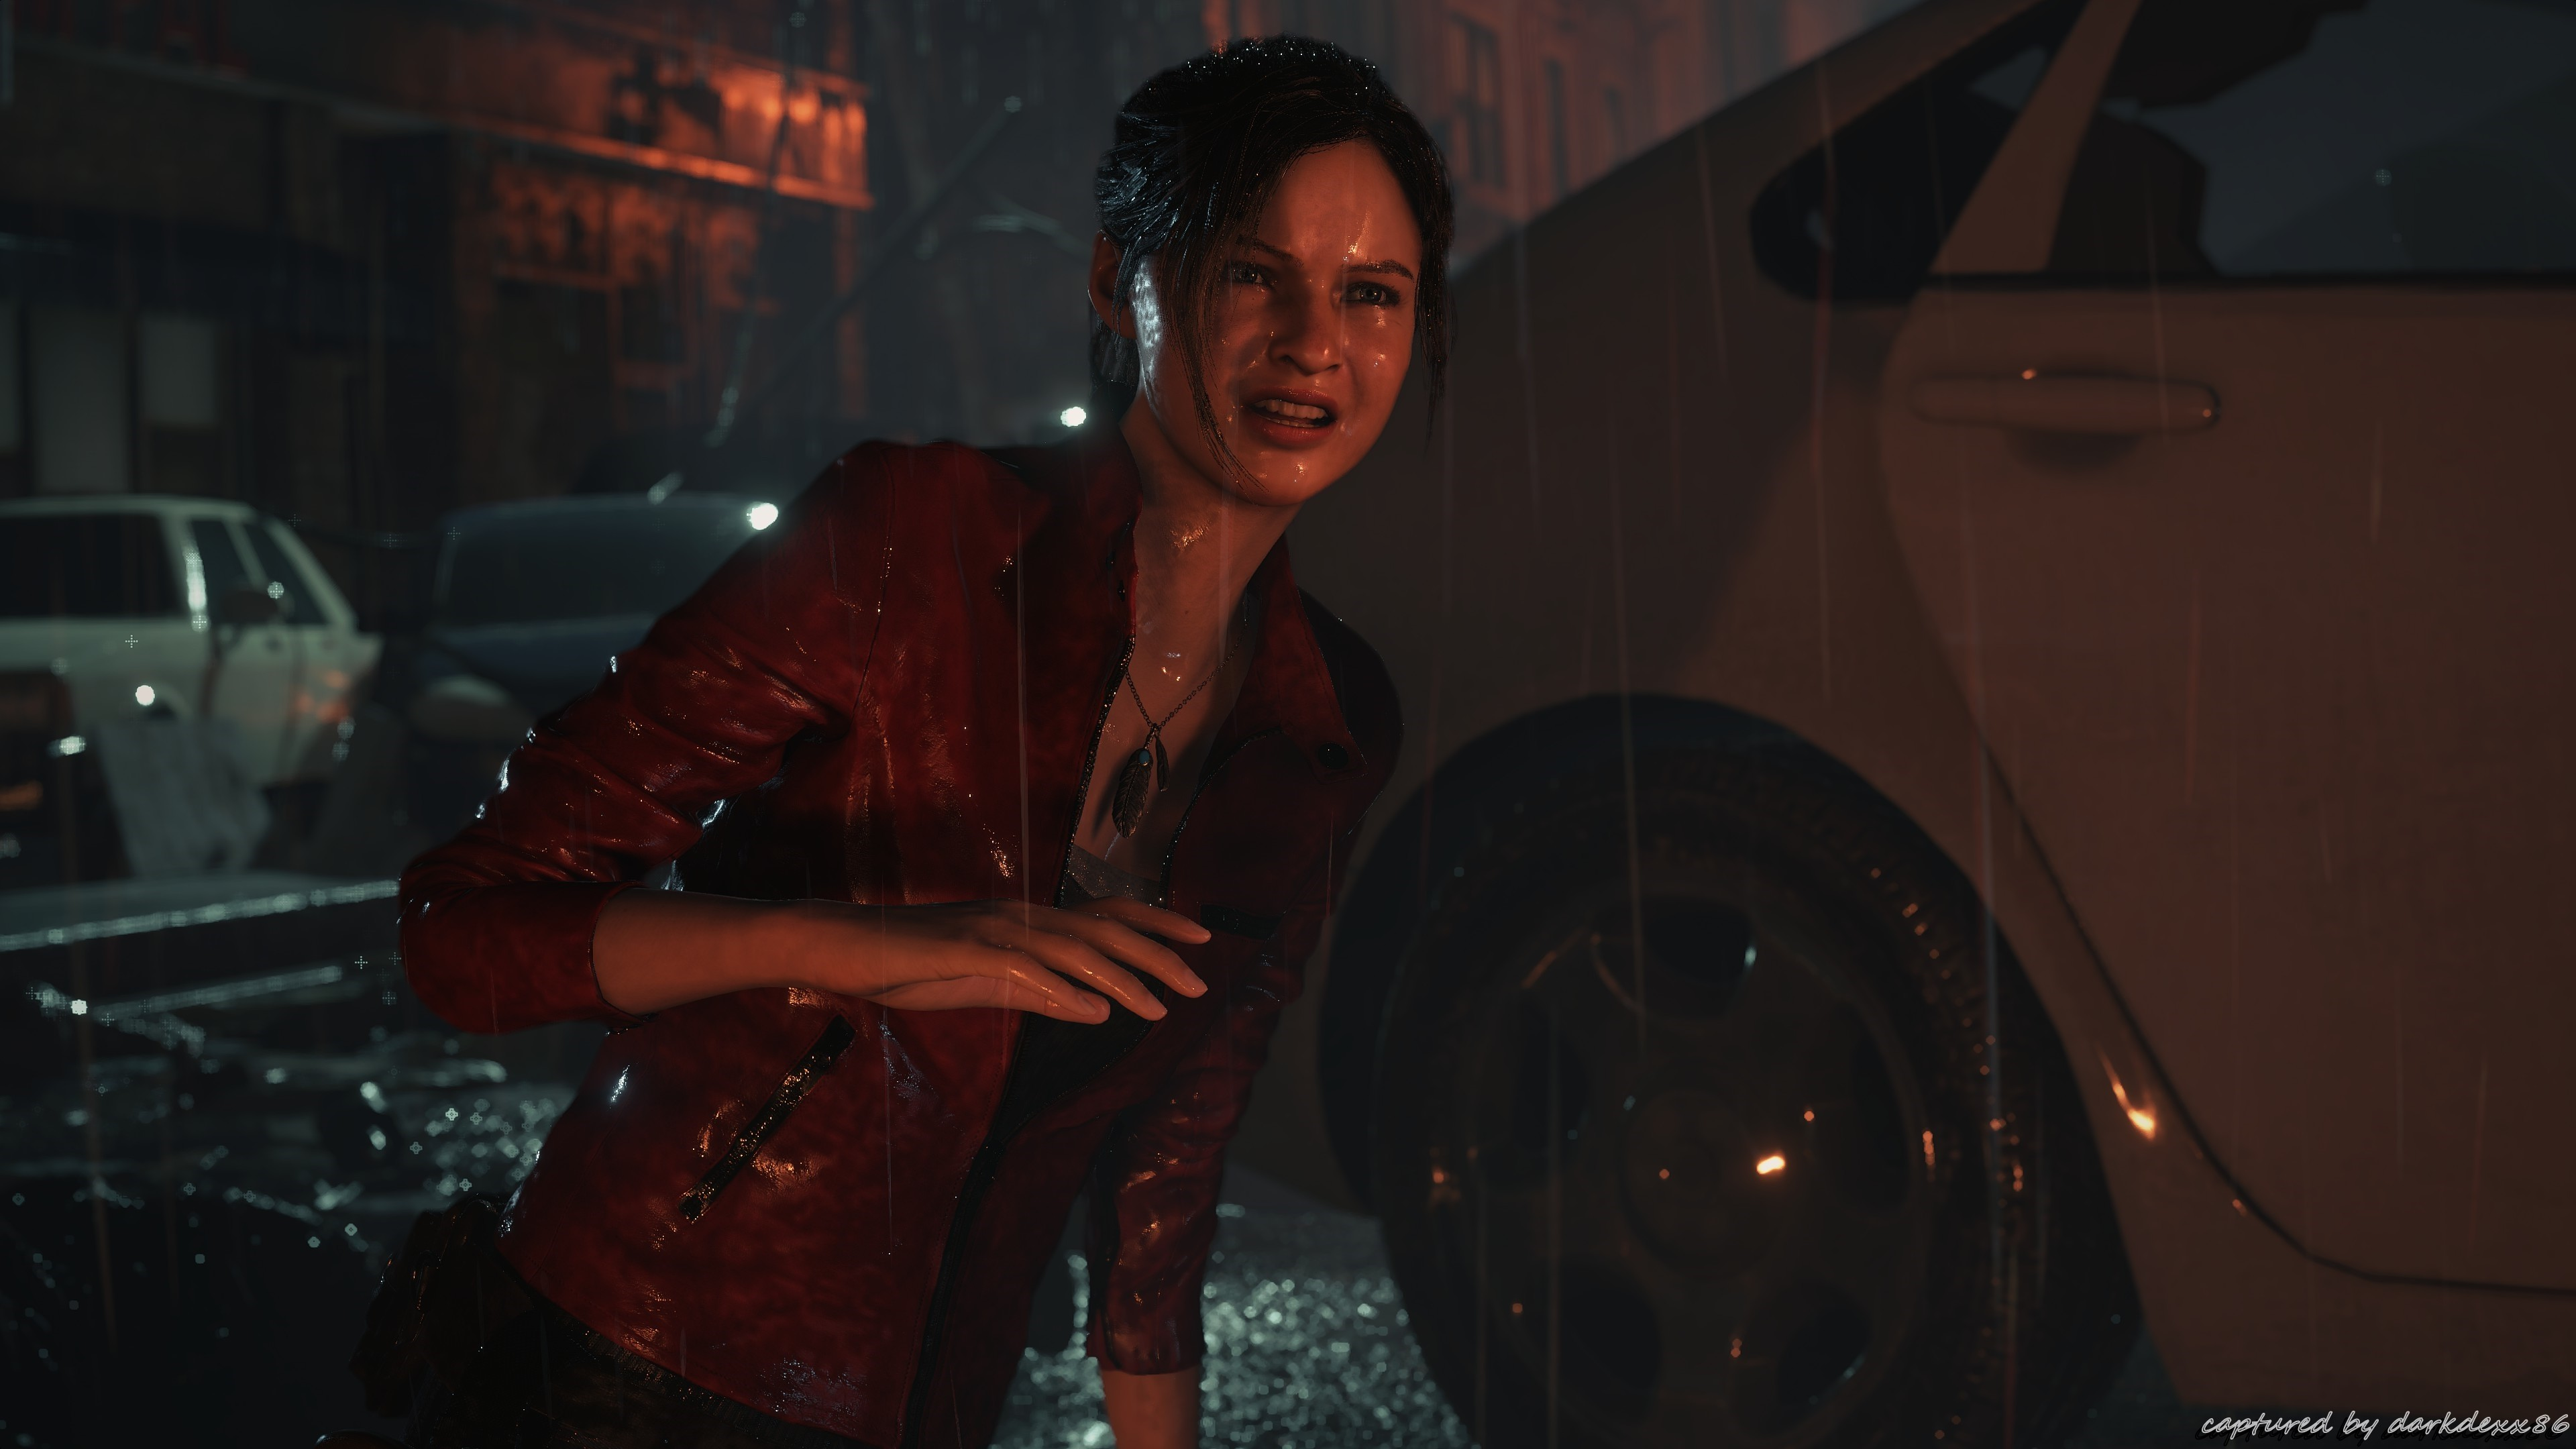 Res: 3840x2160, Resident Evil 2 Biohazard 4K pic004 * Claire Redfield * Max Details and  Shadows * 4K